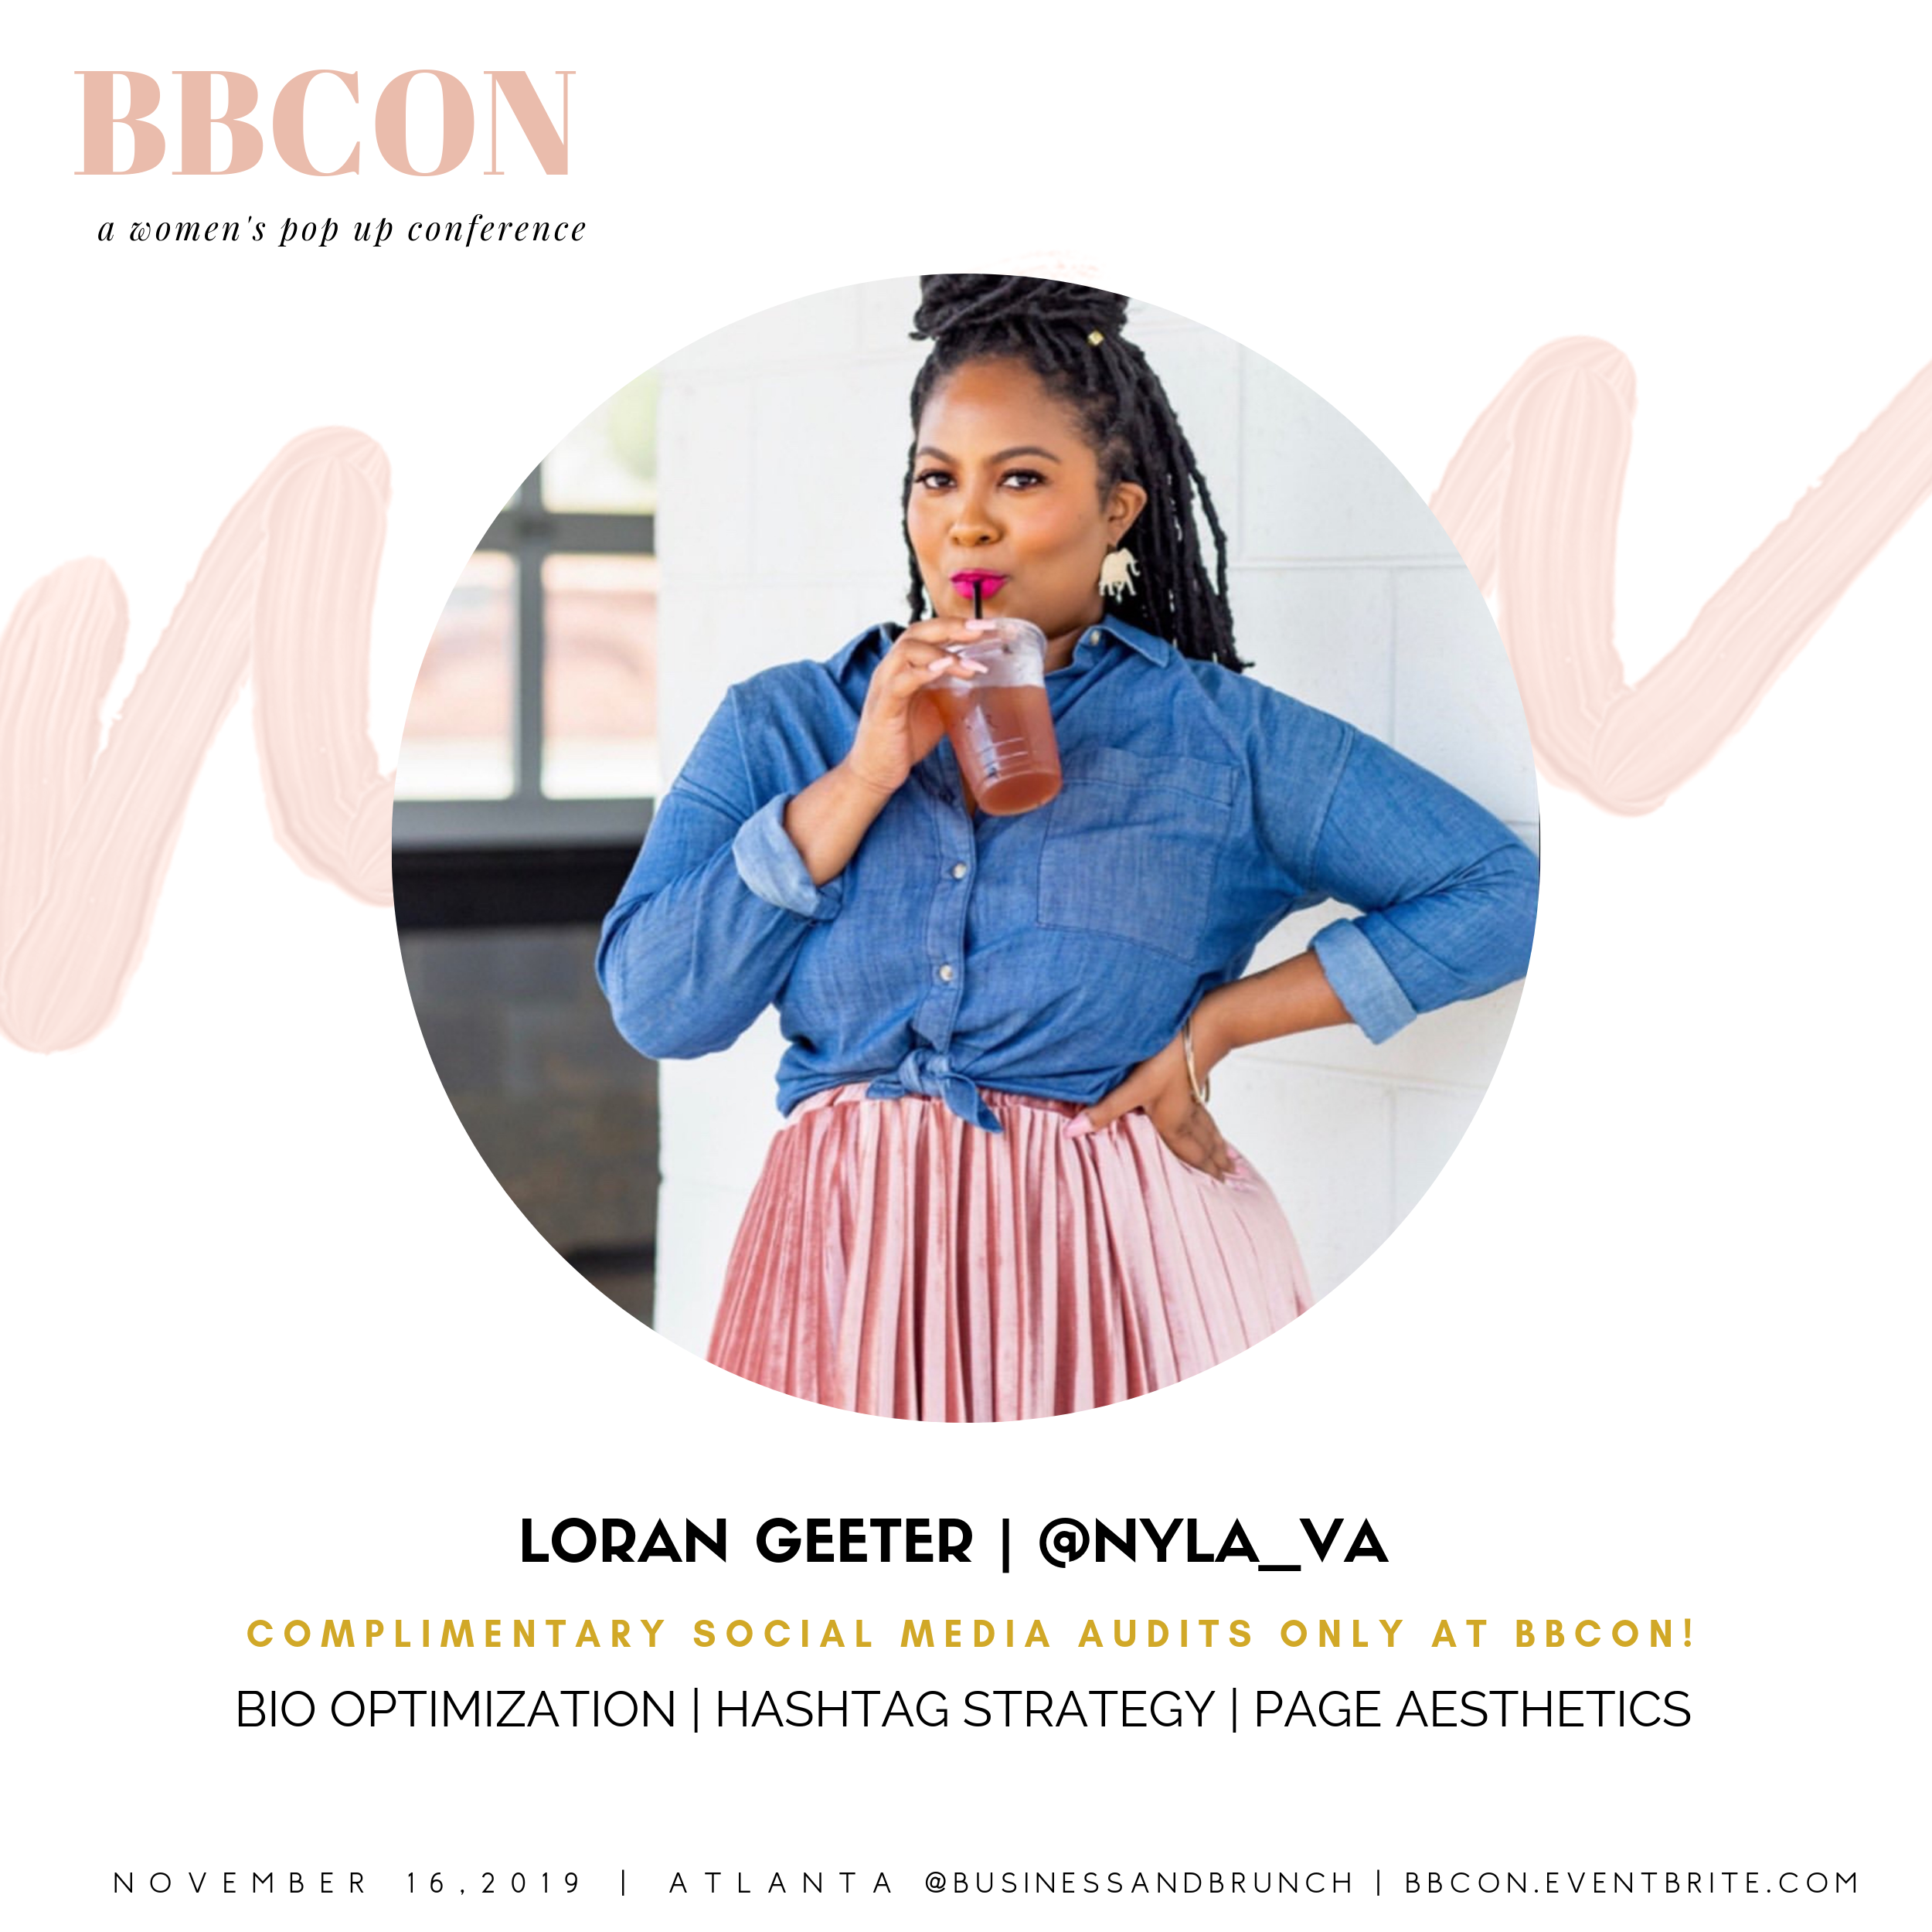 Loran Geeter - Meet Loran and sign up to receive your free social media audit!